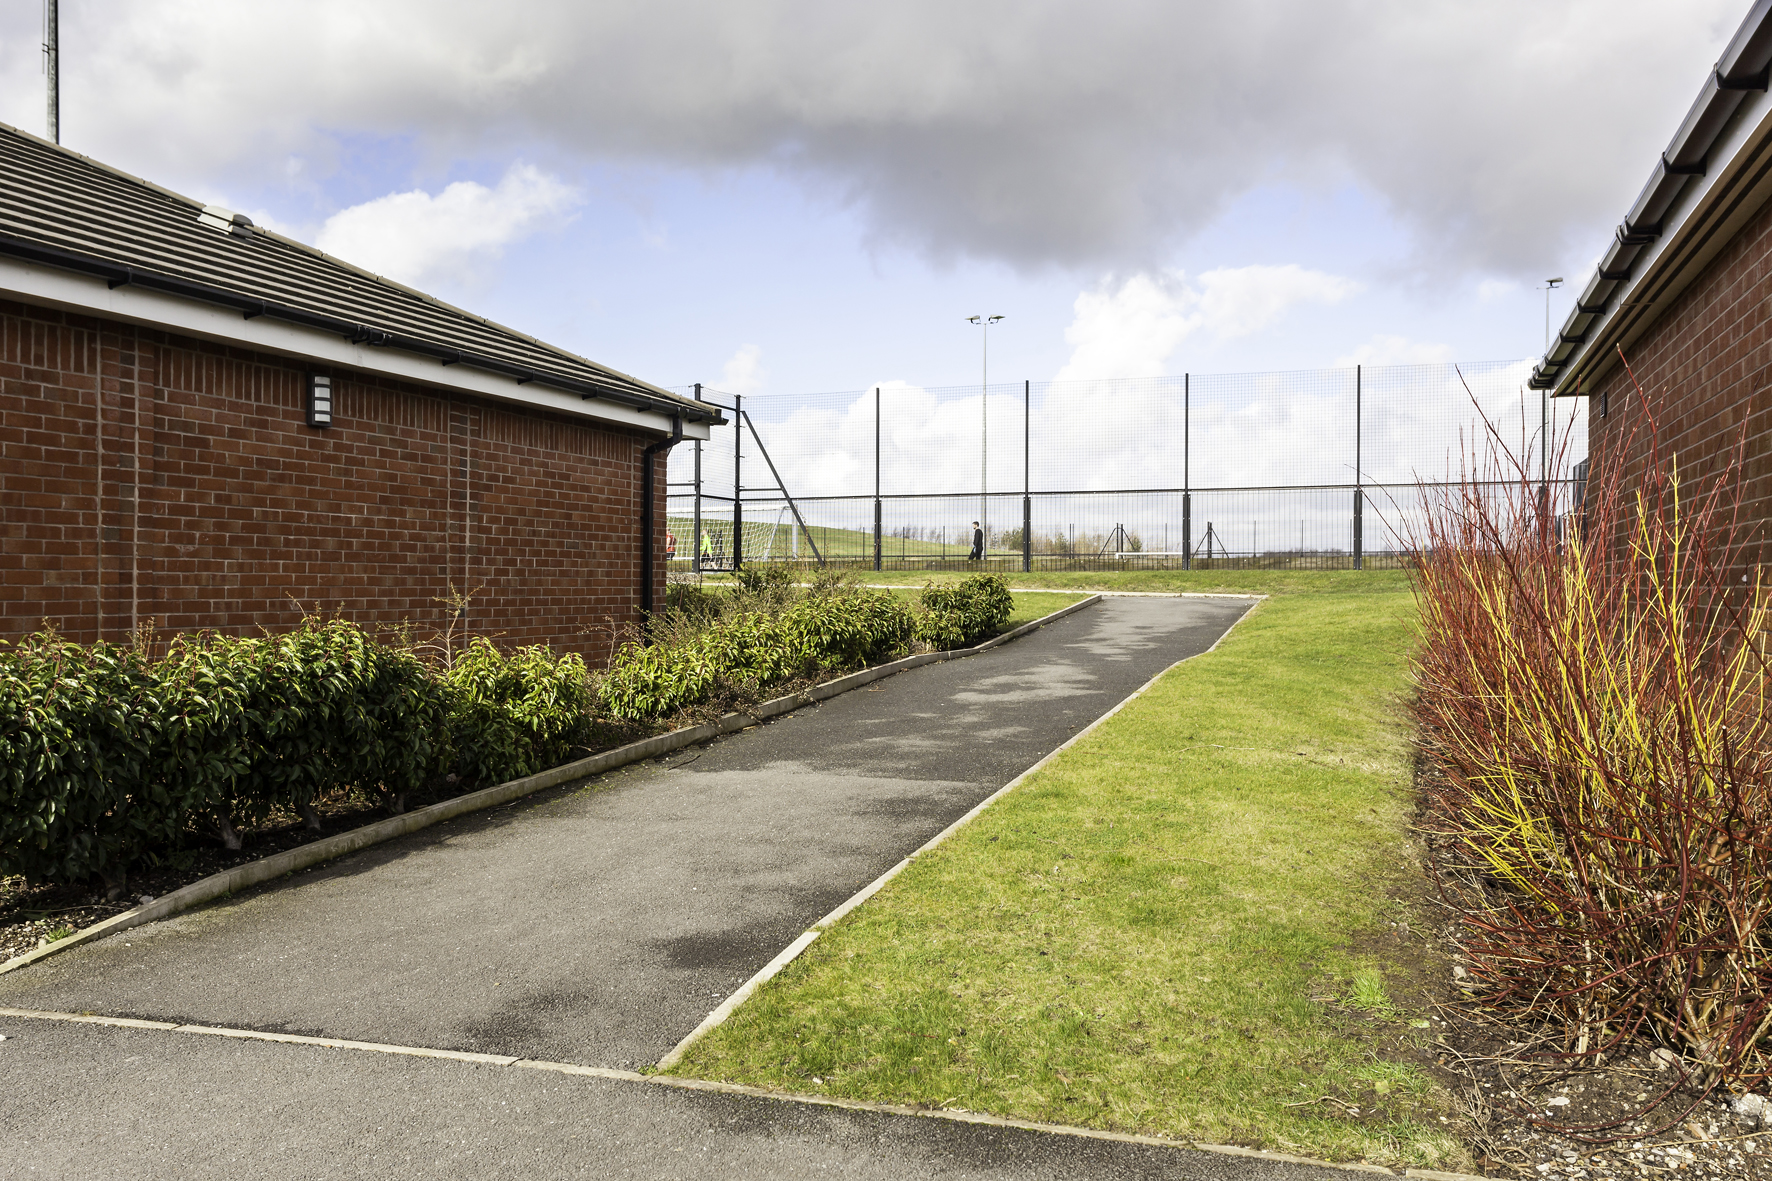 Sports Pitches Outside, path